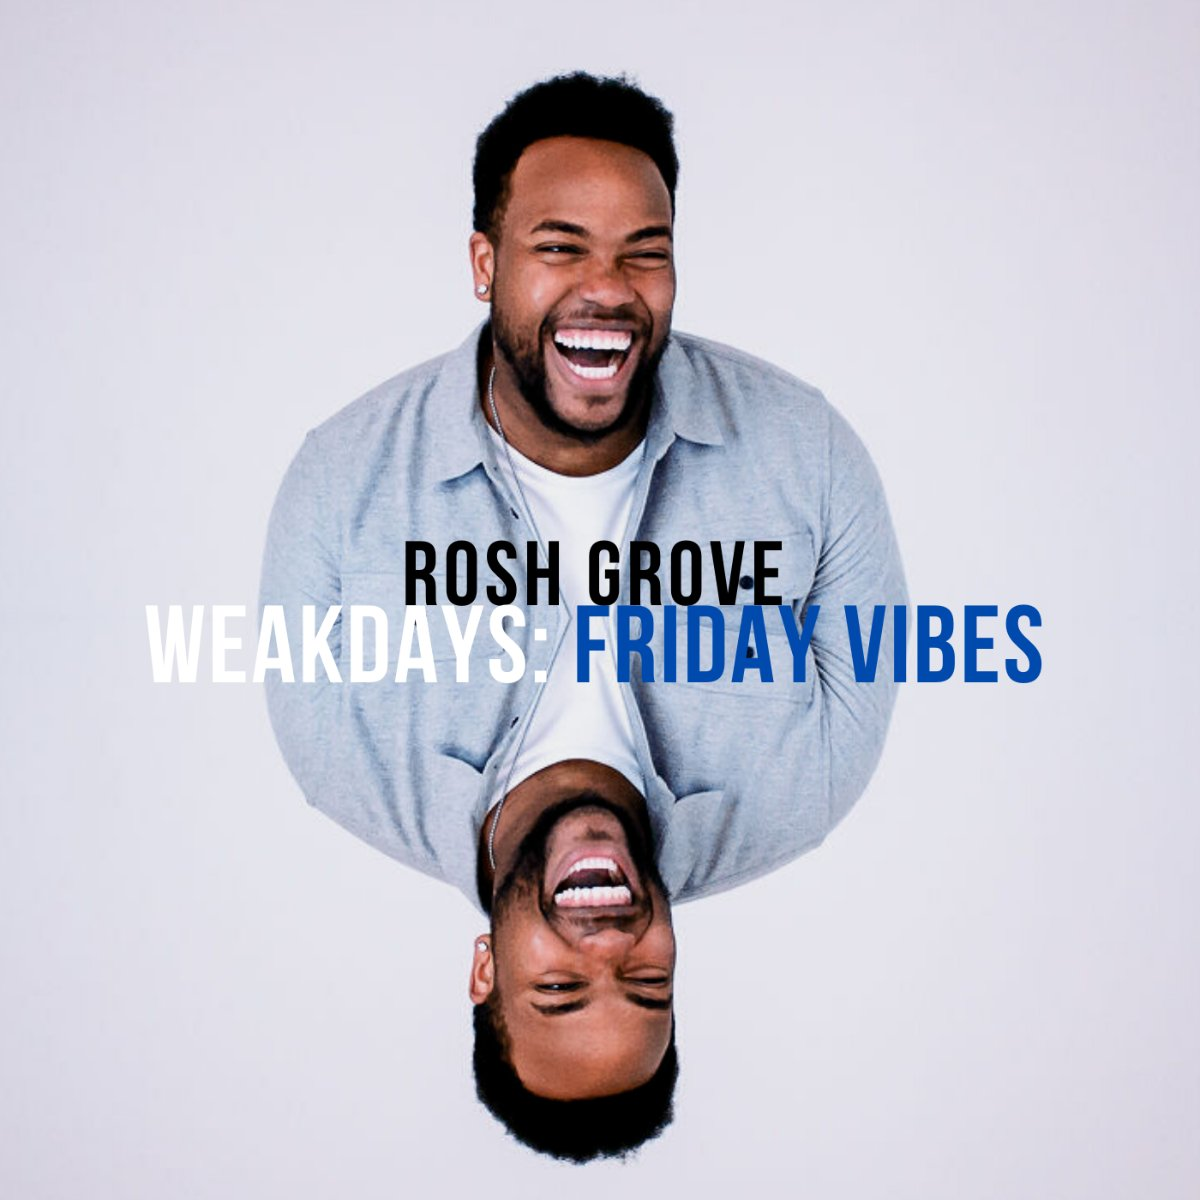 #NewMusic: Toronto-based R&B artist Rosh Grove, releases his second EP called WEAKDAYS: Friday Vibes - #FridayVibes @roshgrove | https://t.co/9Embo5aF4v https://t.co/L1w46wi0zE